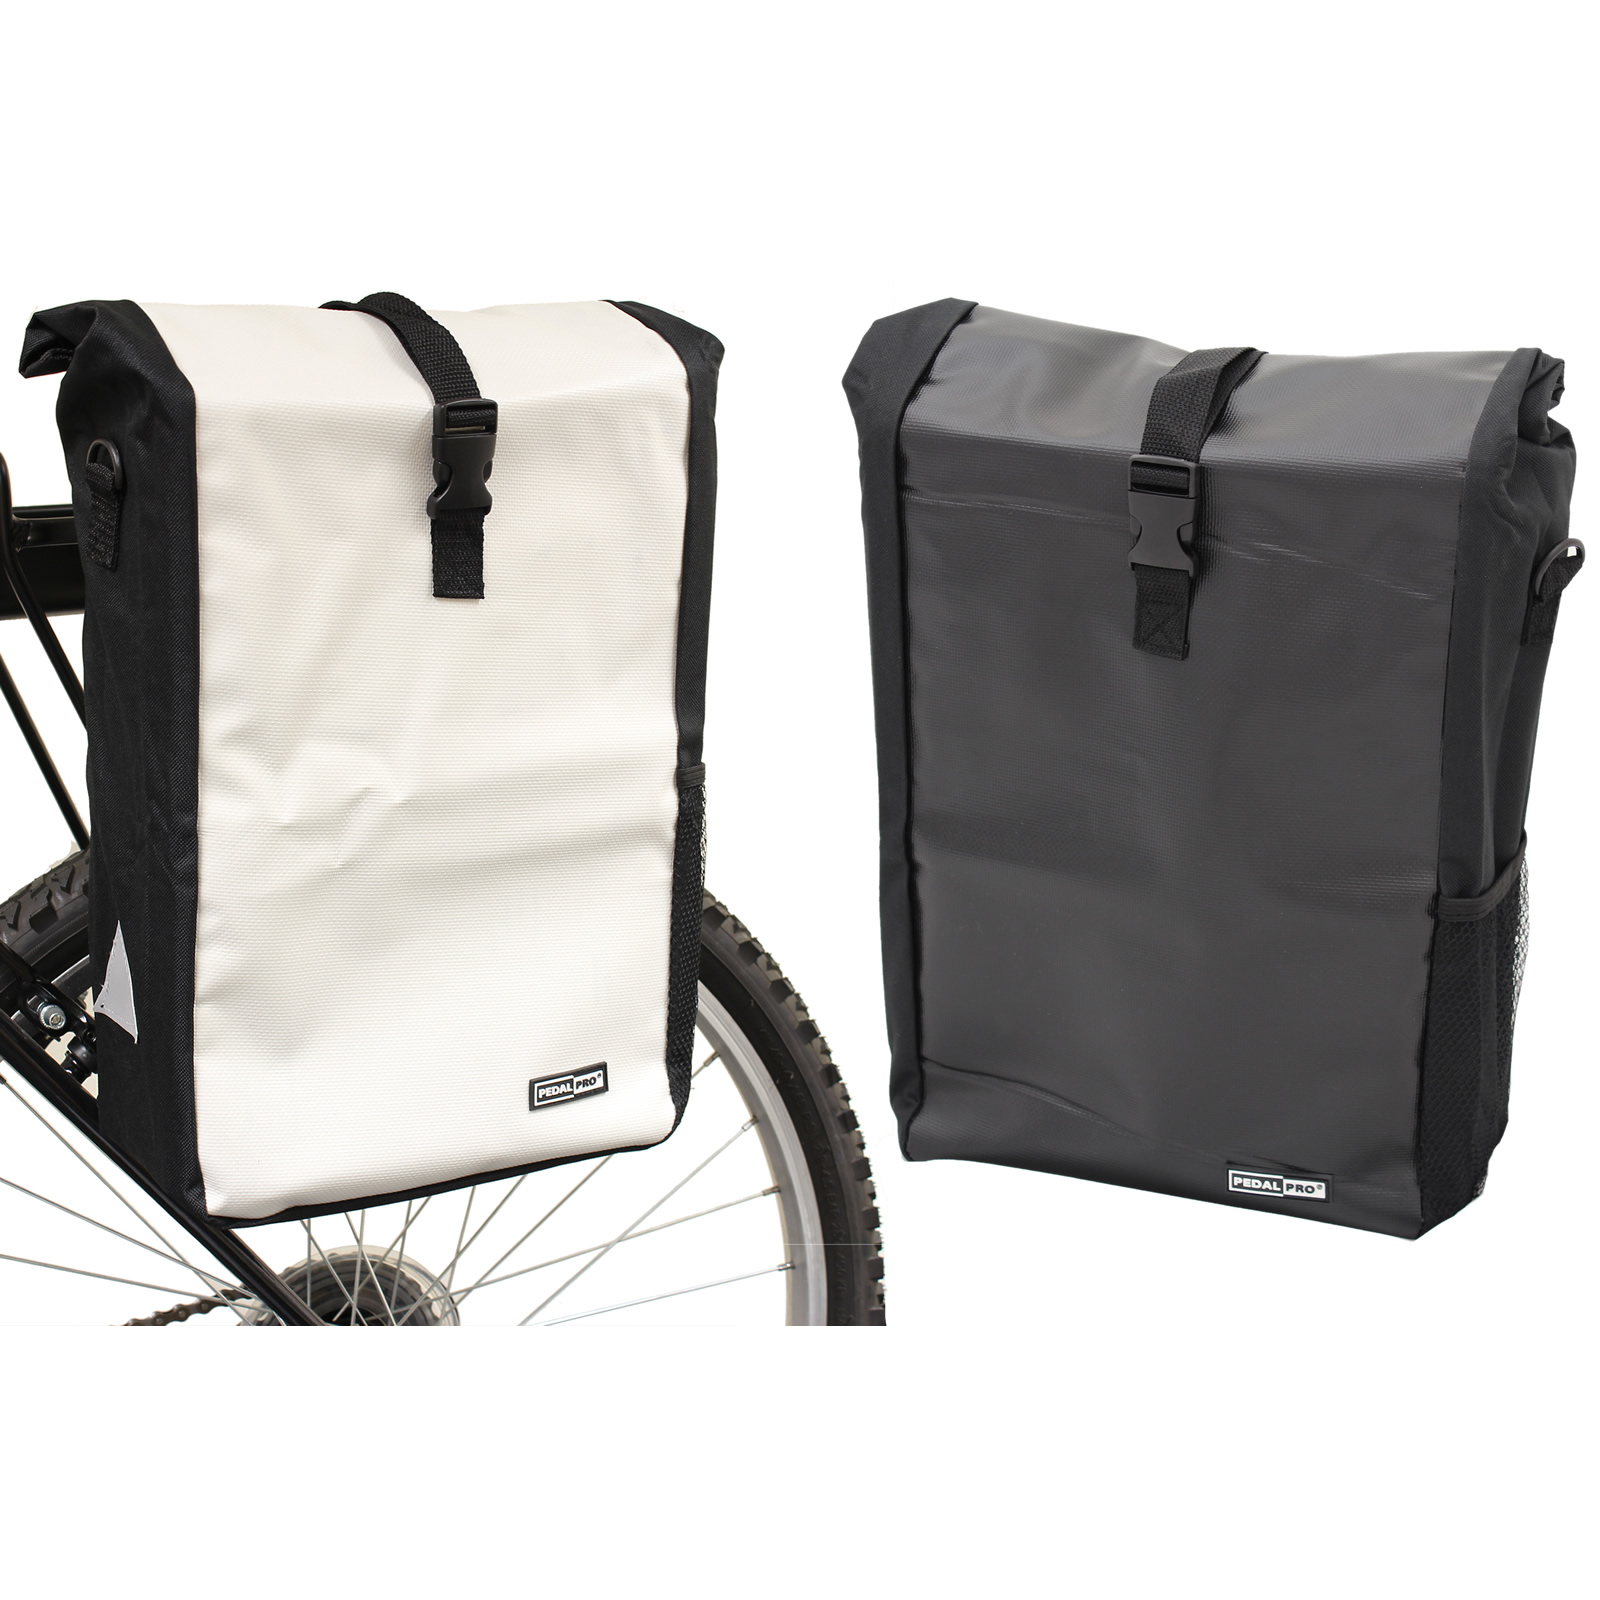 PEDALPRO SINGLE WATERPROOF CYCLE PANNIER BAG BIKE/BICYCLE RACK COMMUTE/SHOPPING Enlarged Preview